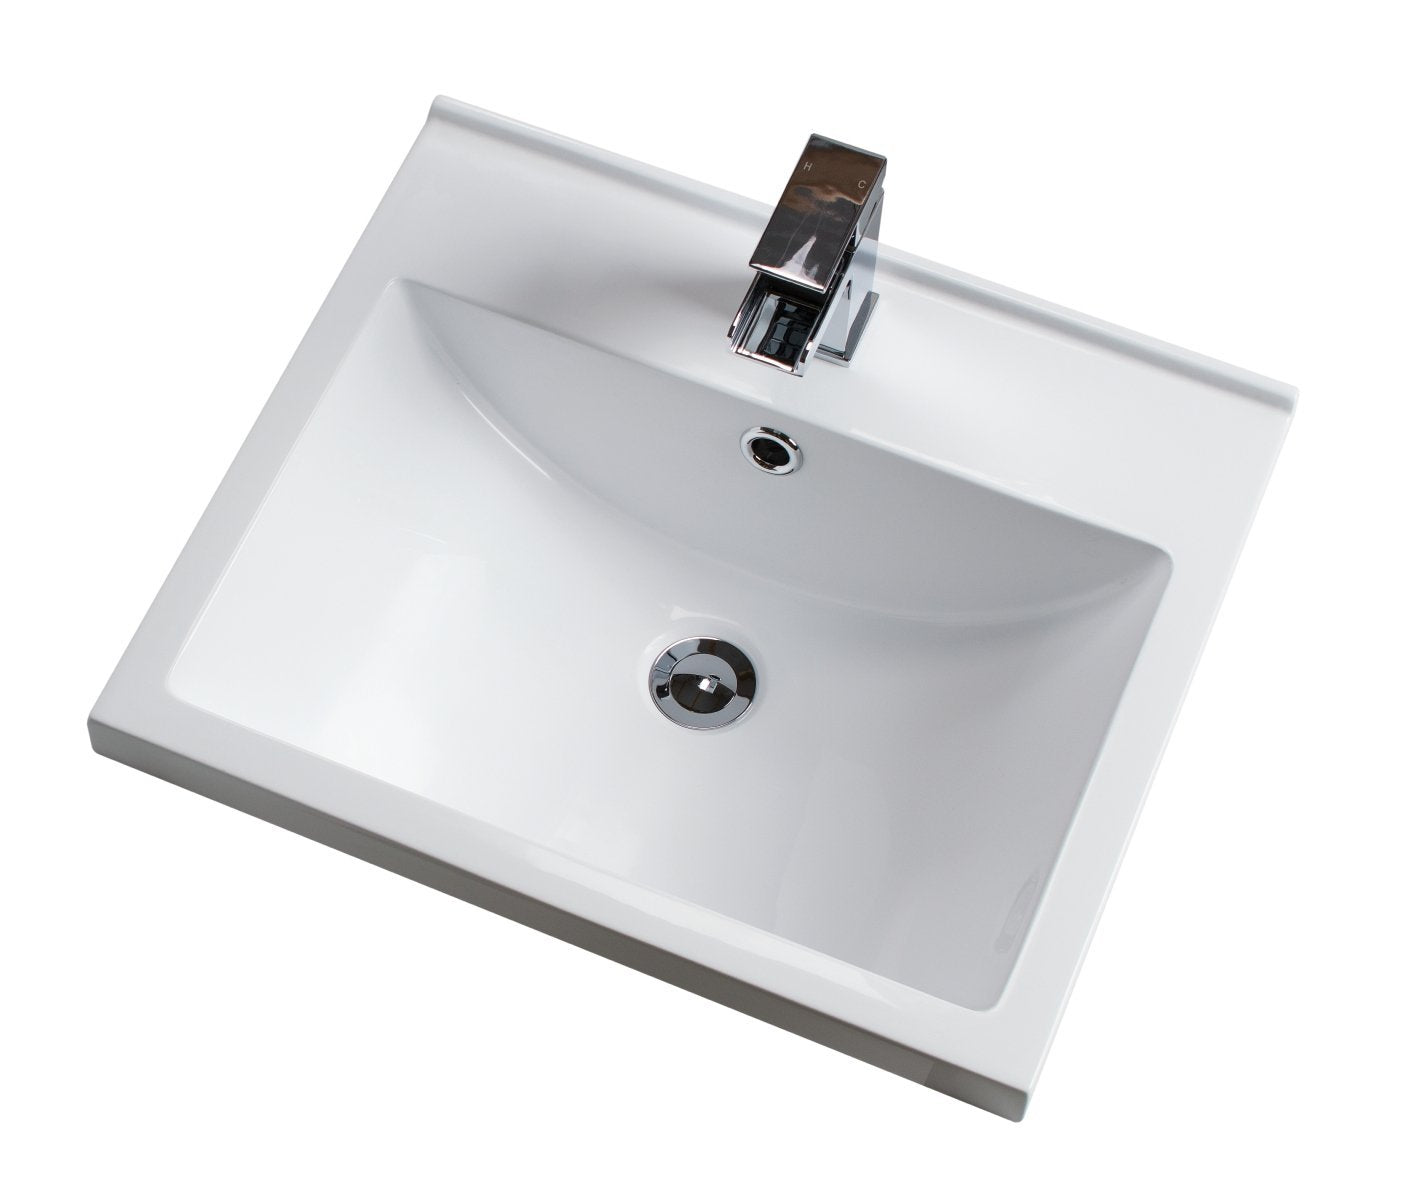 Cassellie Idon Polymarble Mid-Edge Vanity Unit Basin - 506mm Wide - 1 Tap Hole - White